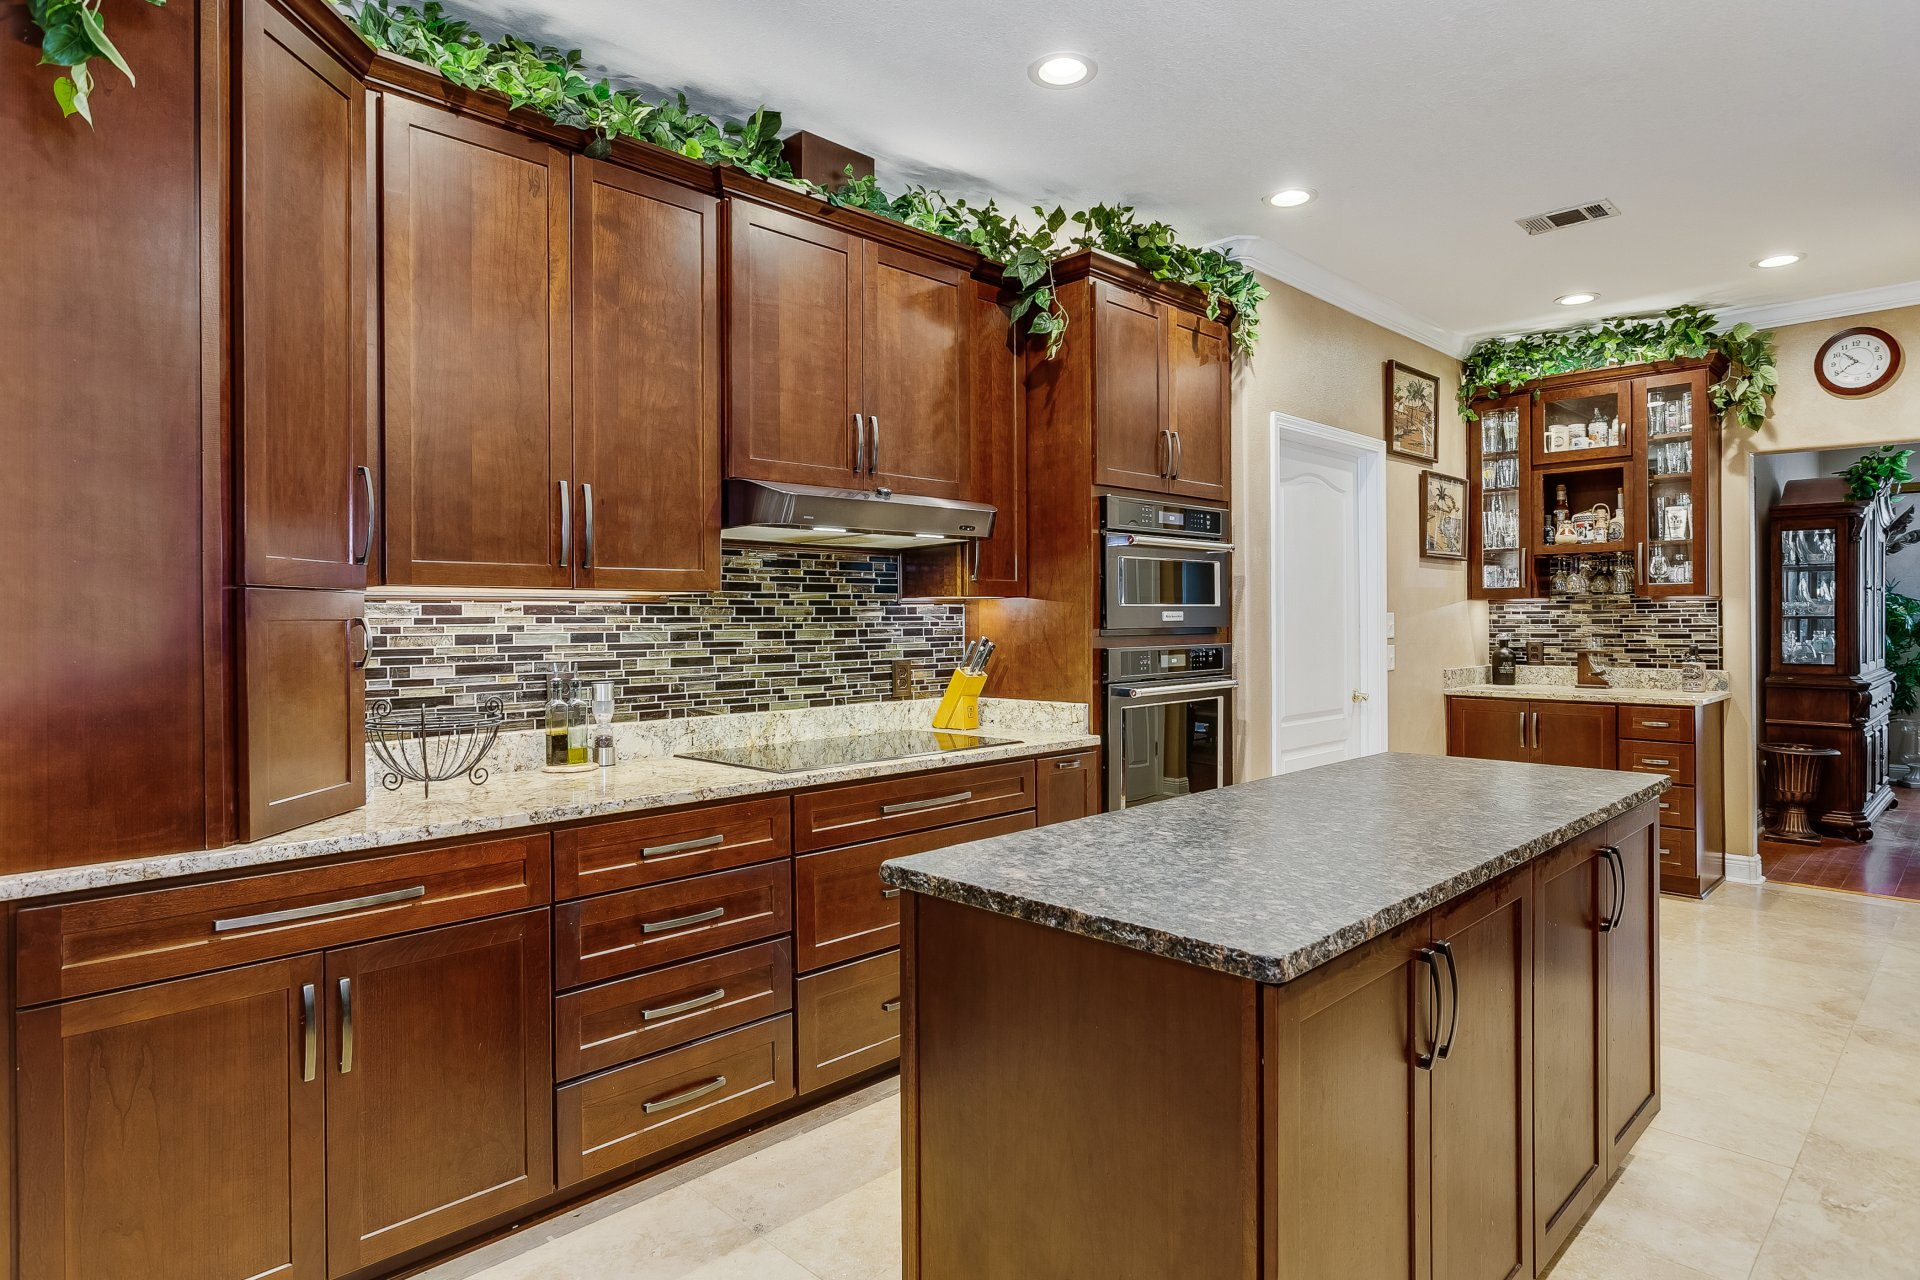 Ely and Allen - custom kitchen cabinets